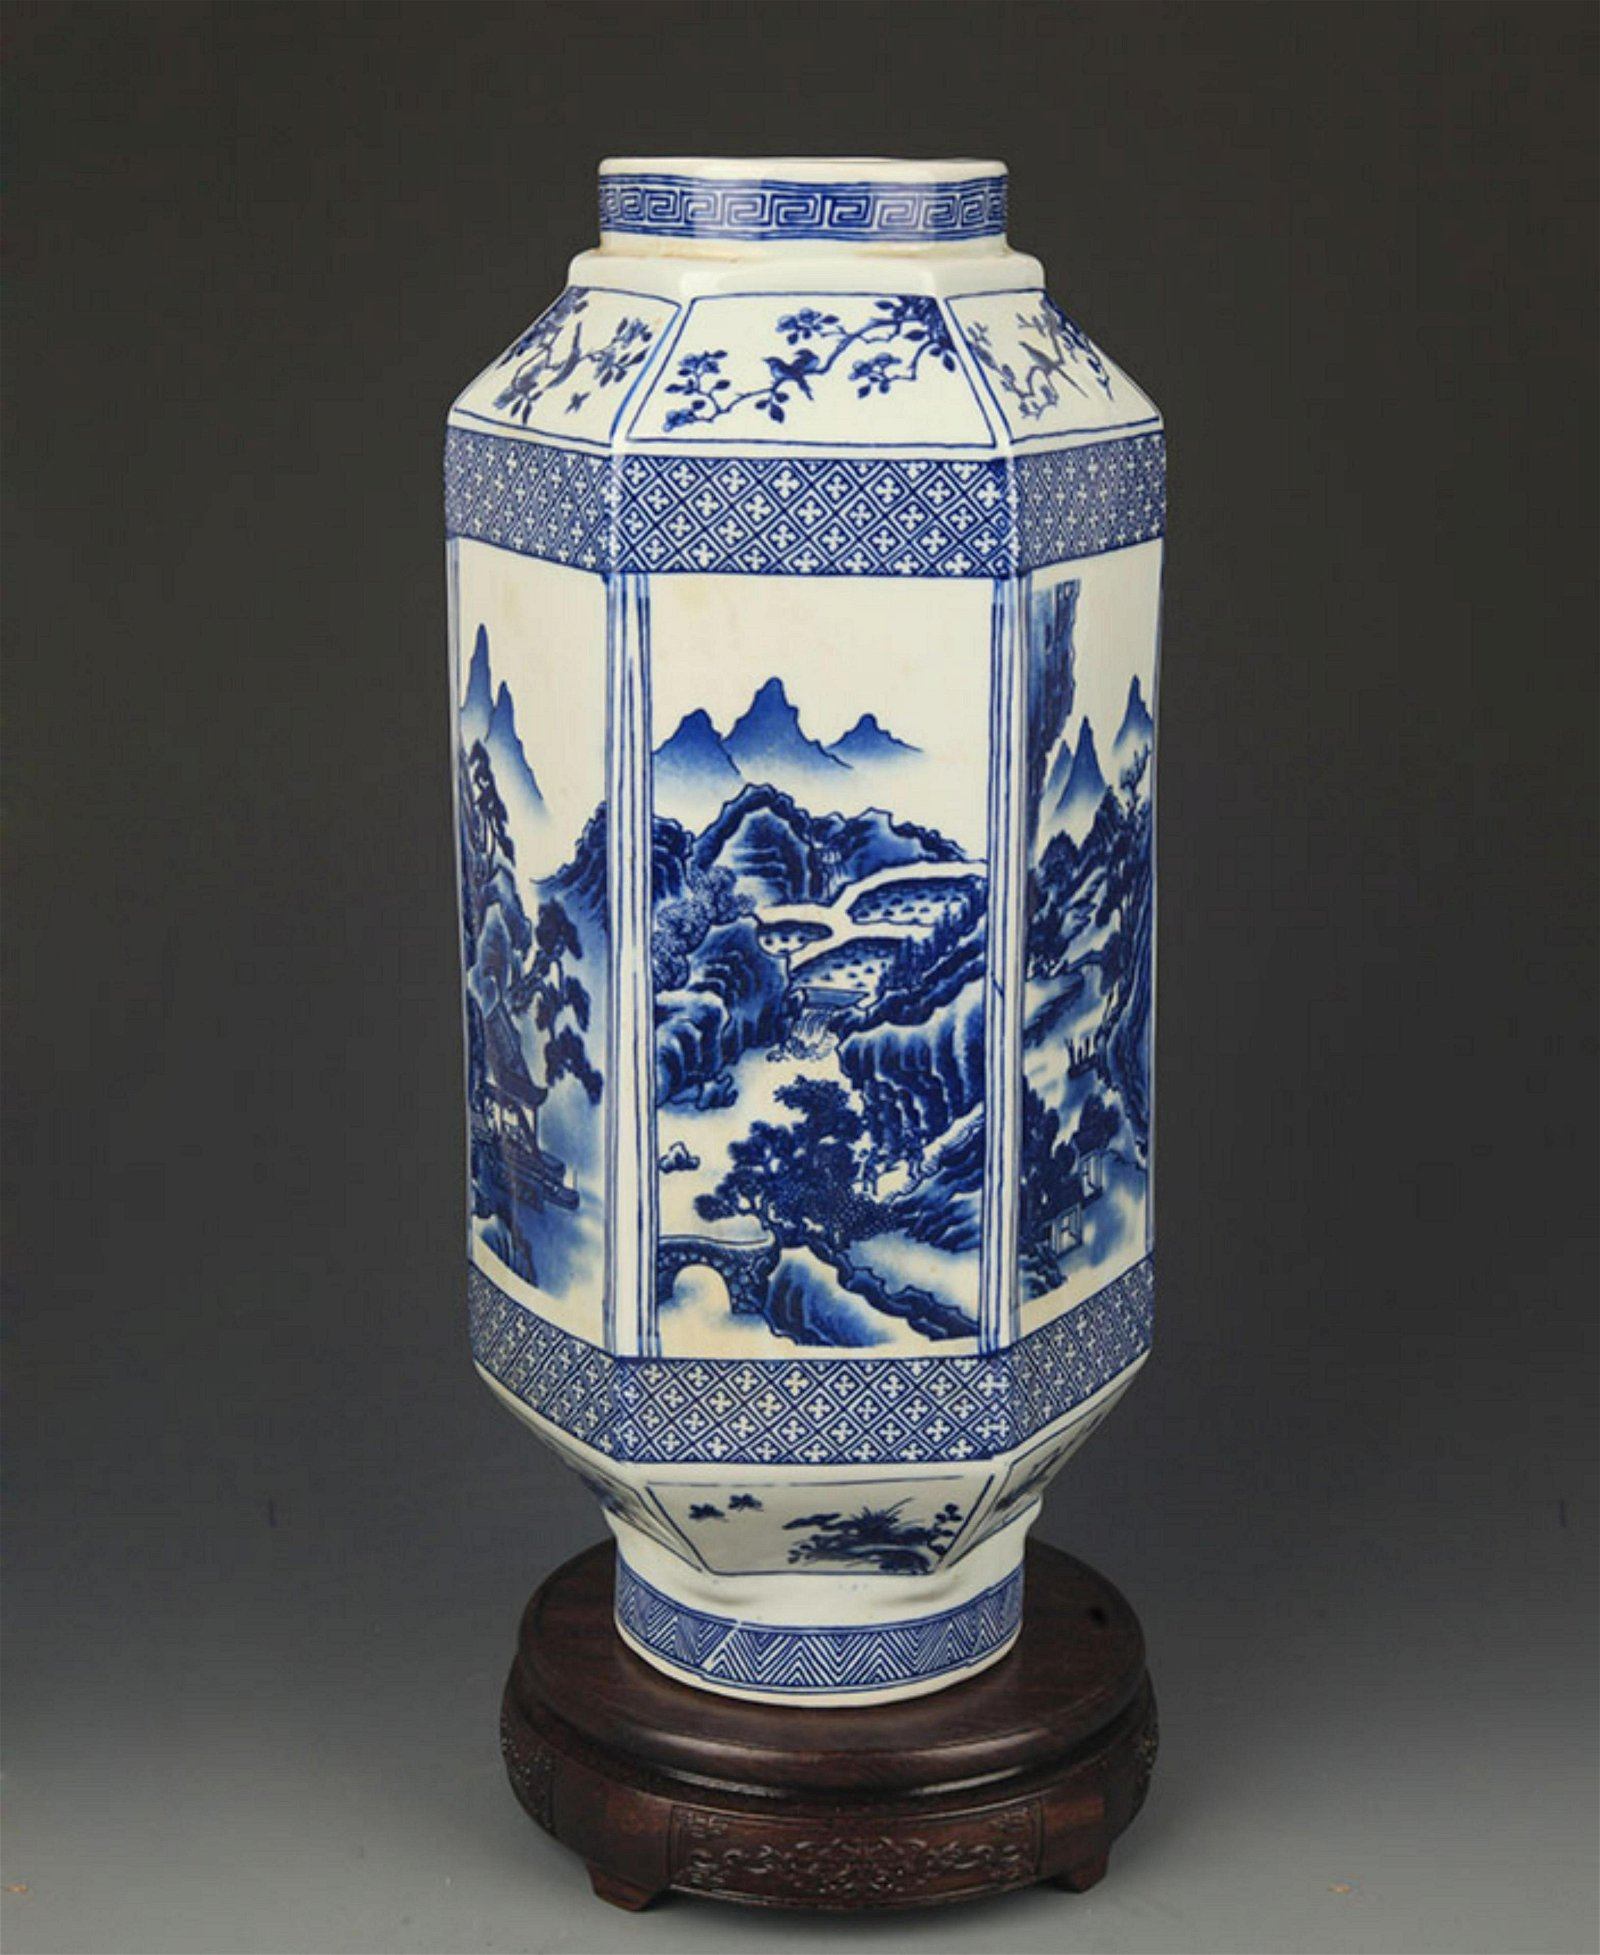 BLUE AND WHITE LANDSCAPING SIX SIDE VASE